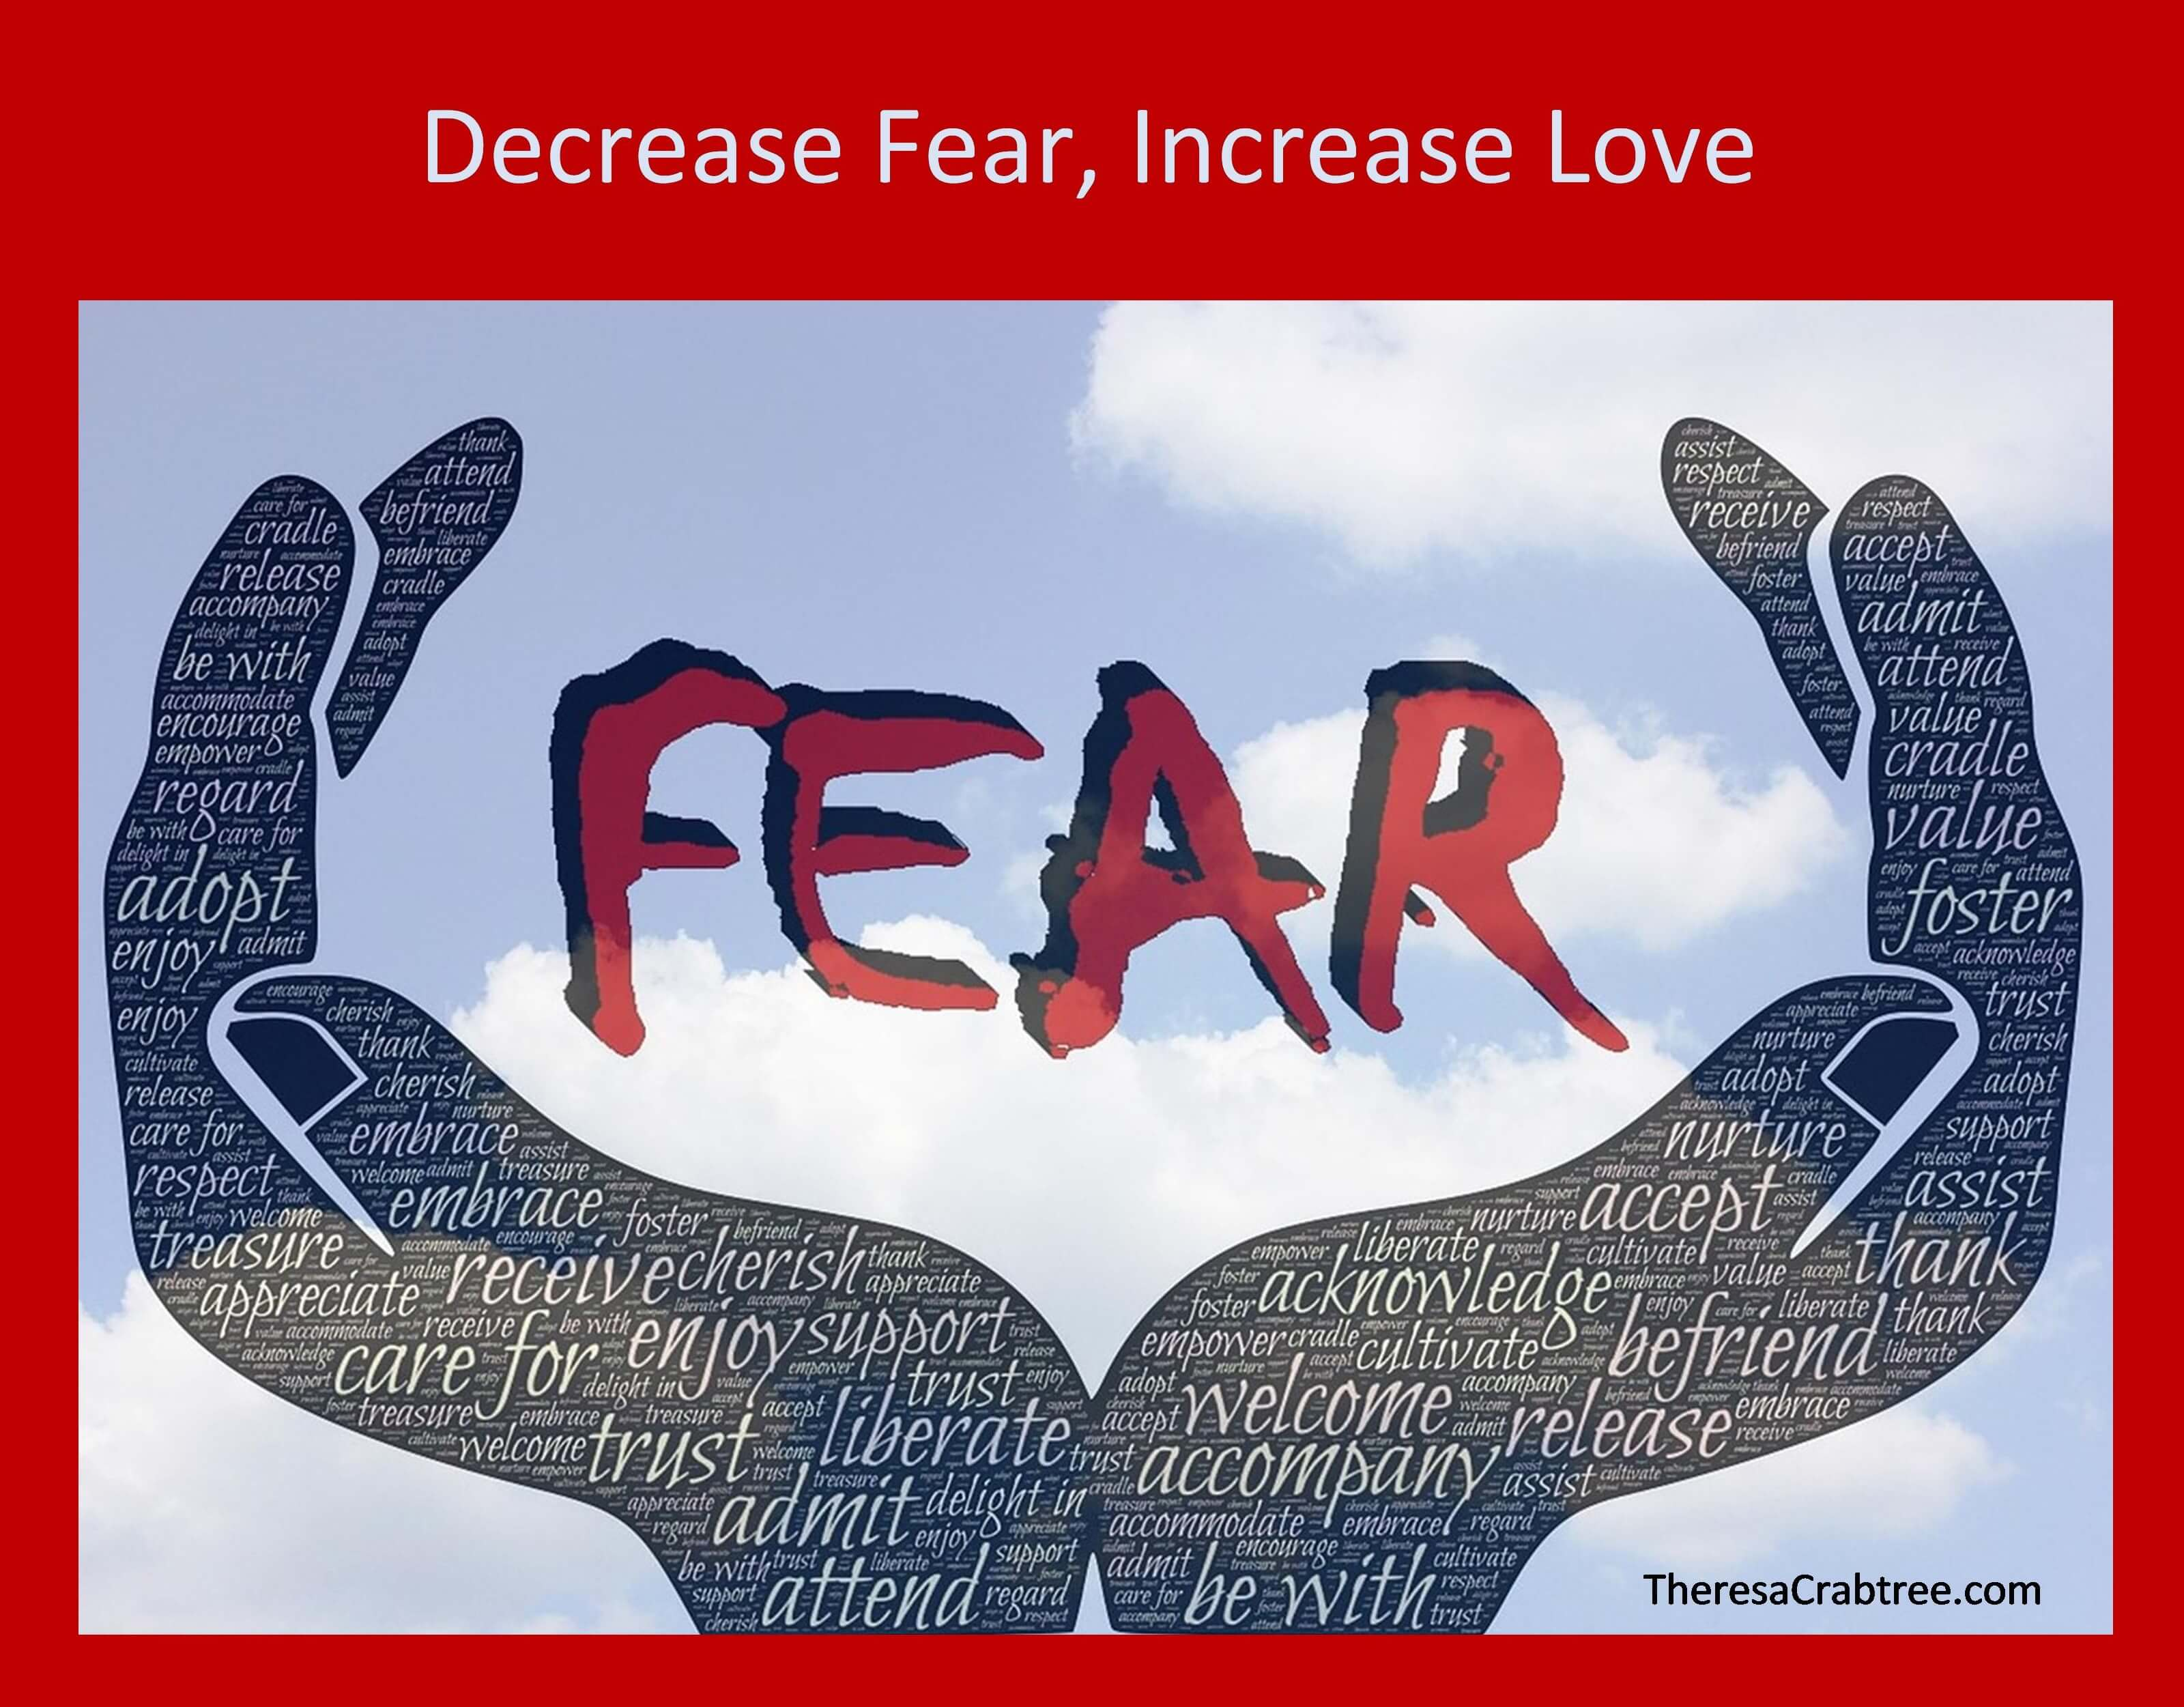 Decrease Fear, Increase Love